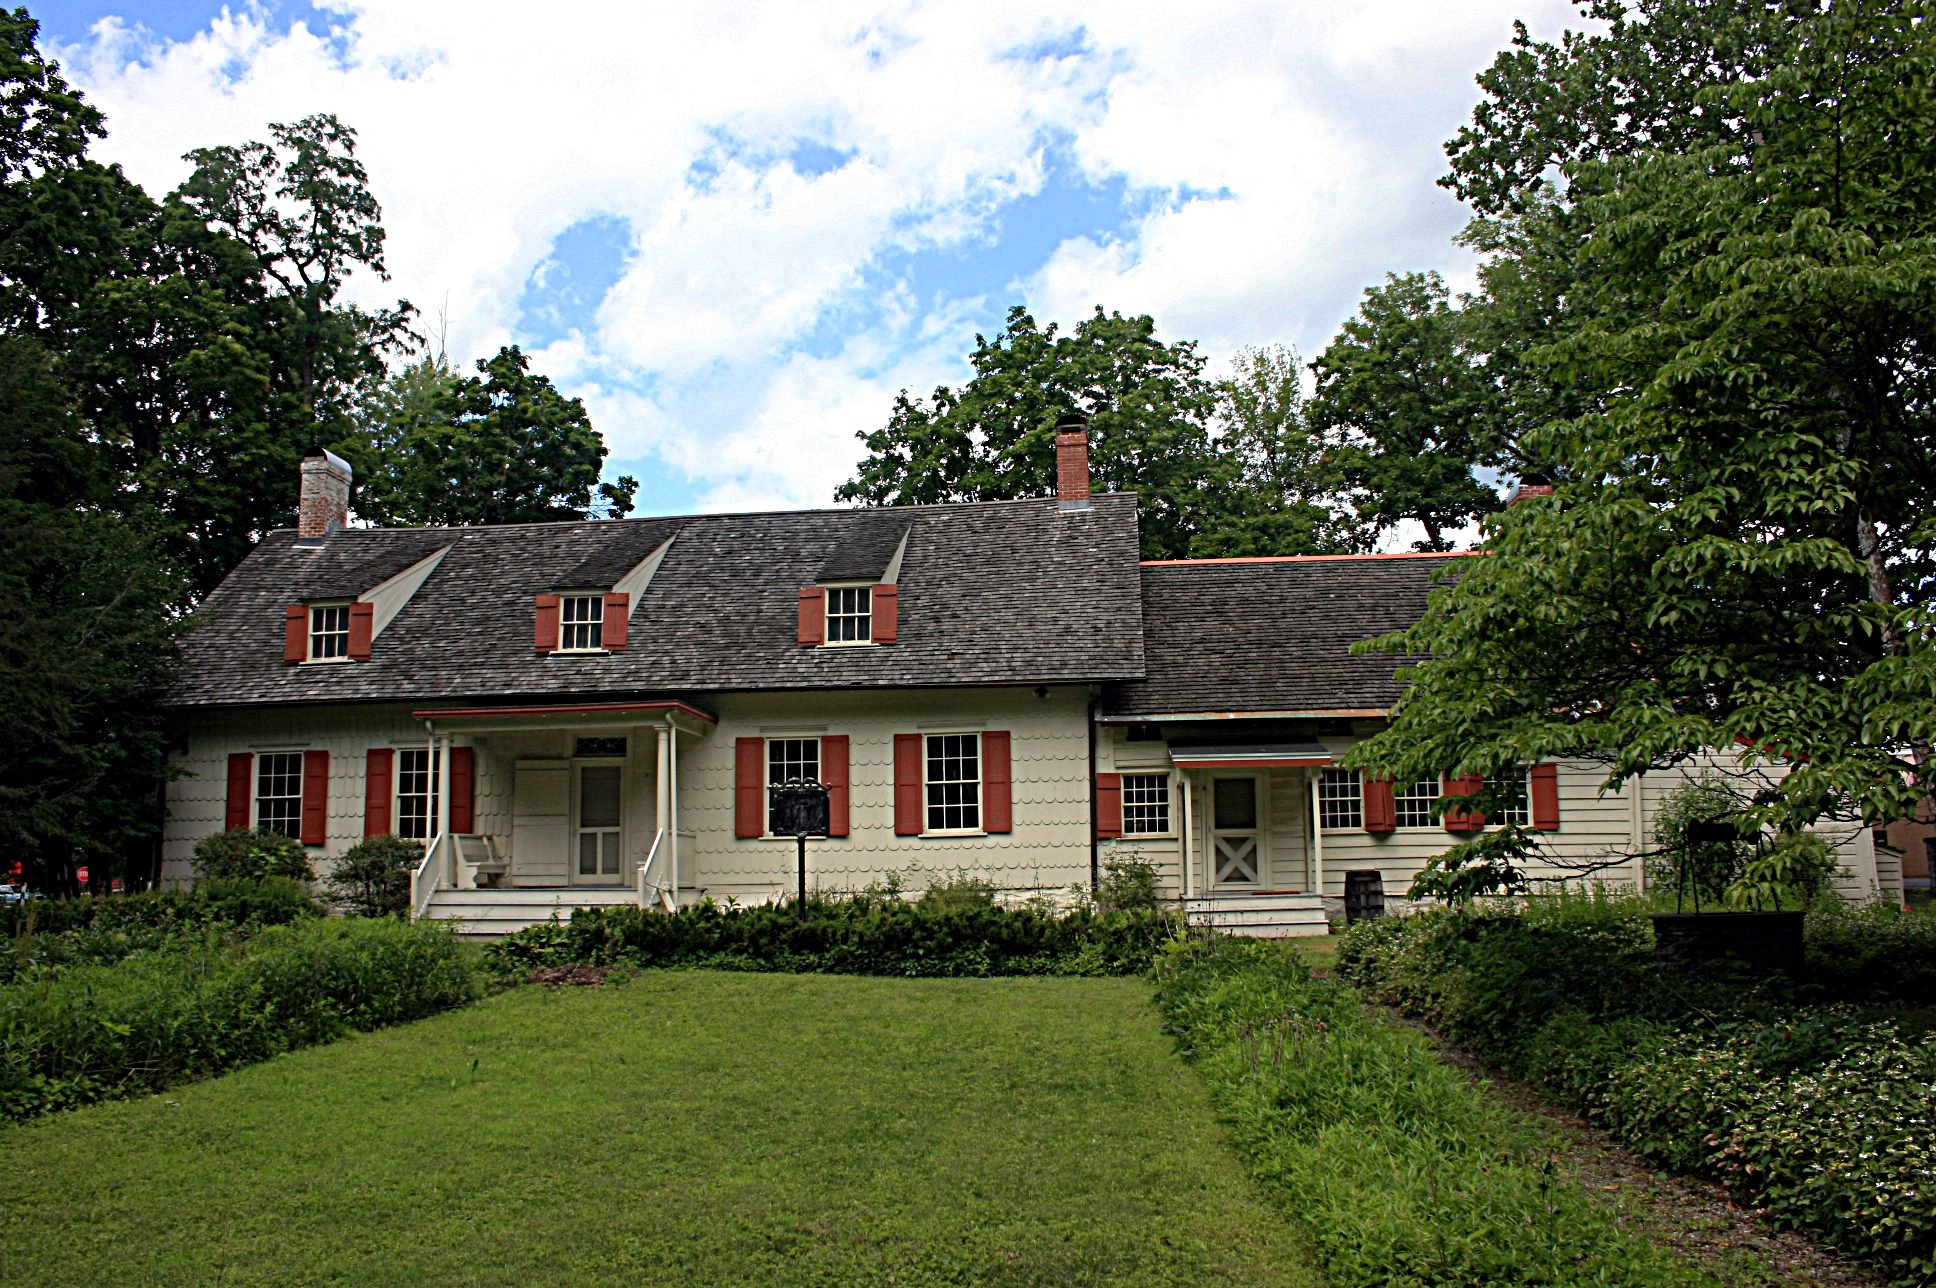 The Madam Brett Homestead